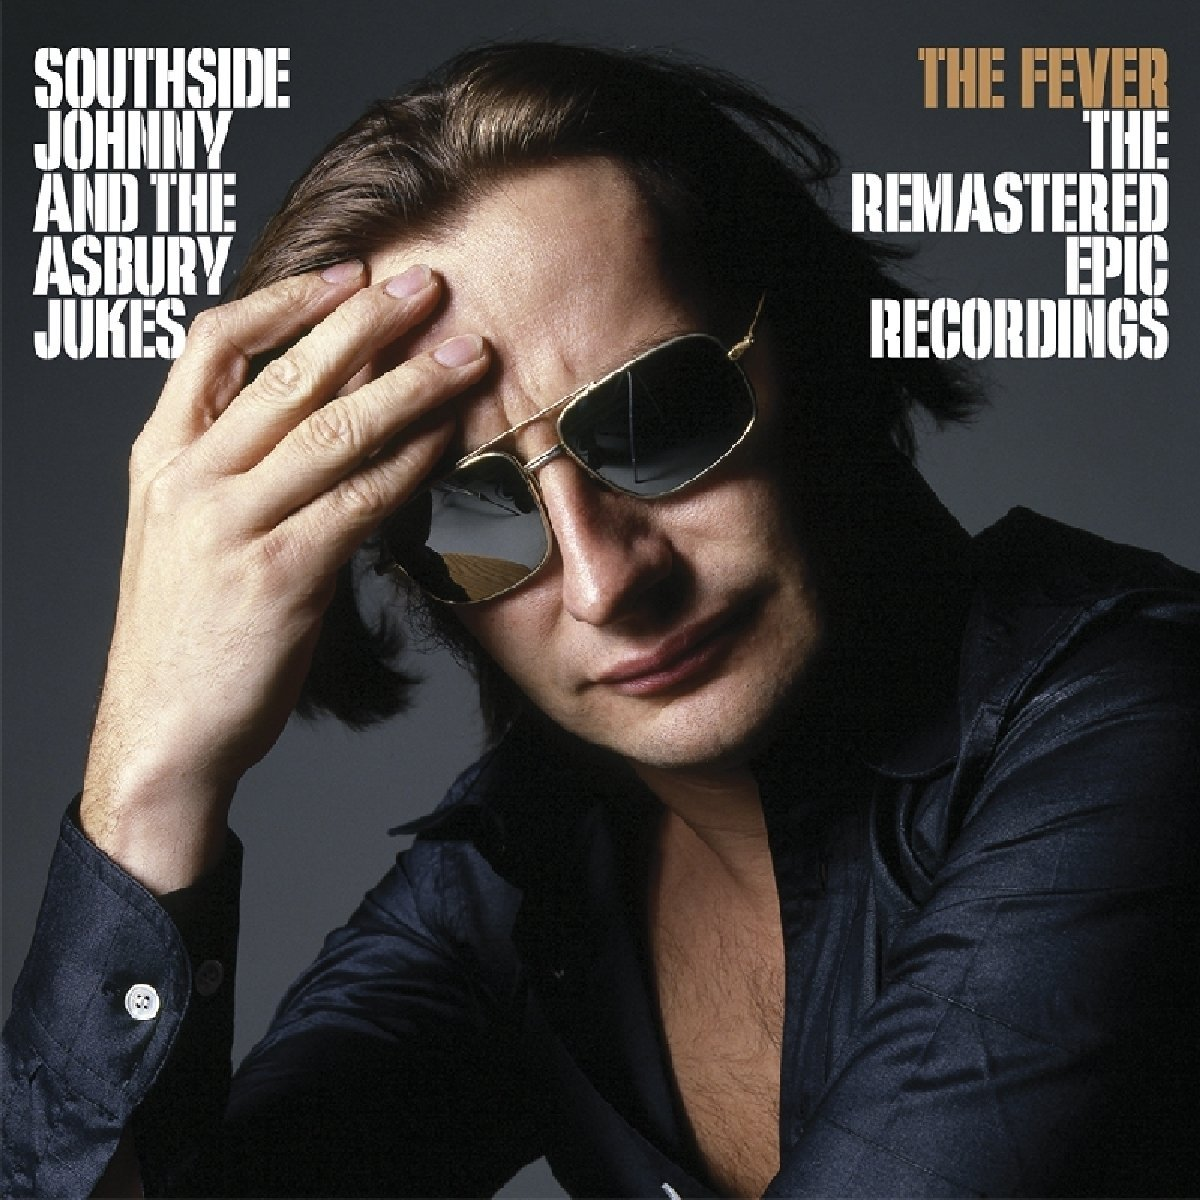 Southside Johnny - Page 2 170415083816653893